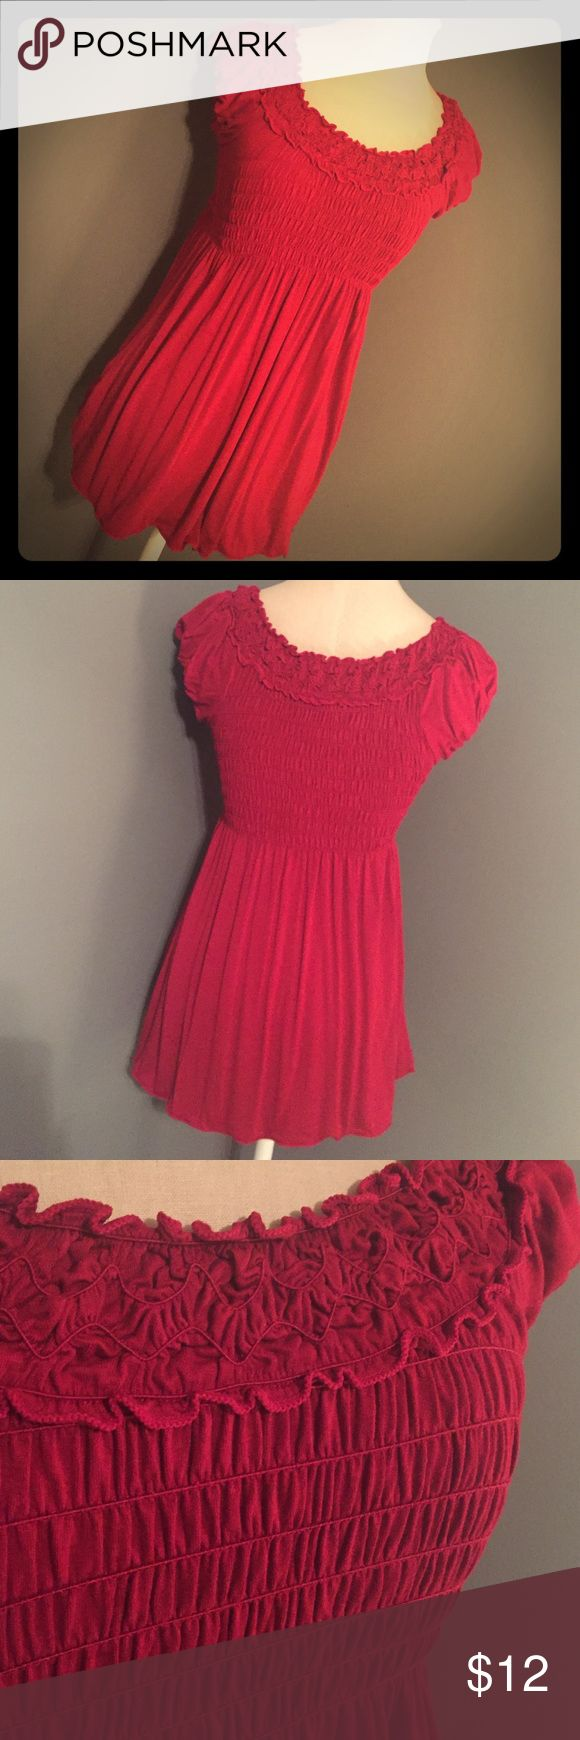 Max Studio red smocked top This red smocked Max Studio is perfect for the upcoming Holiday season!  It is a cranberry red, not a tacky bright Holiday red. The smocking detail is beautiful and makes the bust area very comfortable and have a nice feminine fit. Worn a few times and no flaws. Very soft and stretchy! Max Studio Tops Tees - Short Sleeve